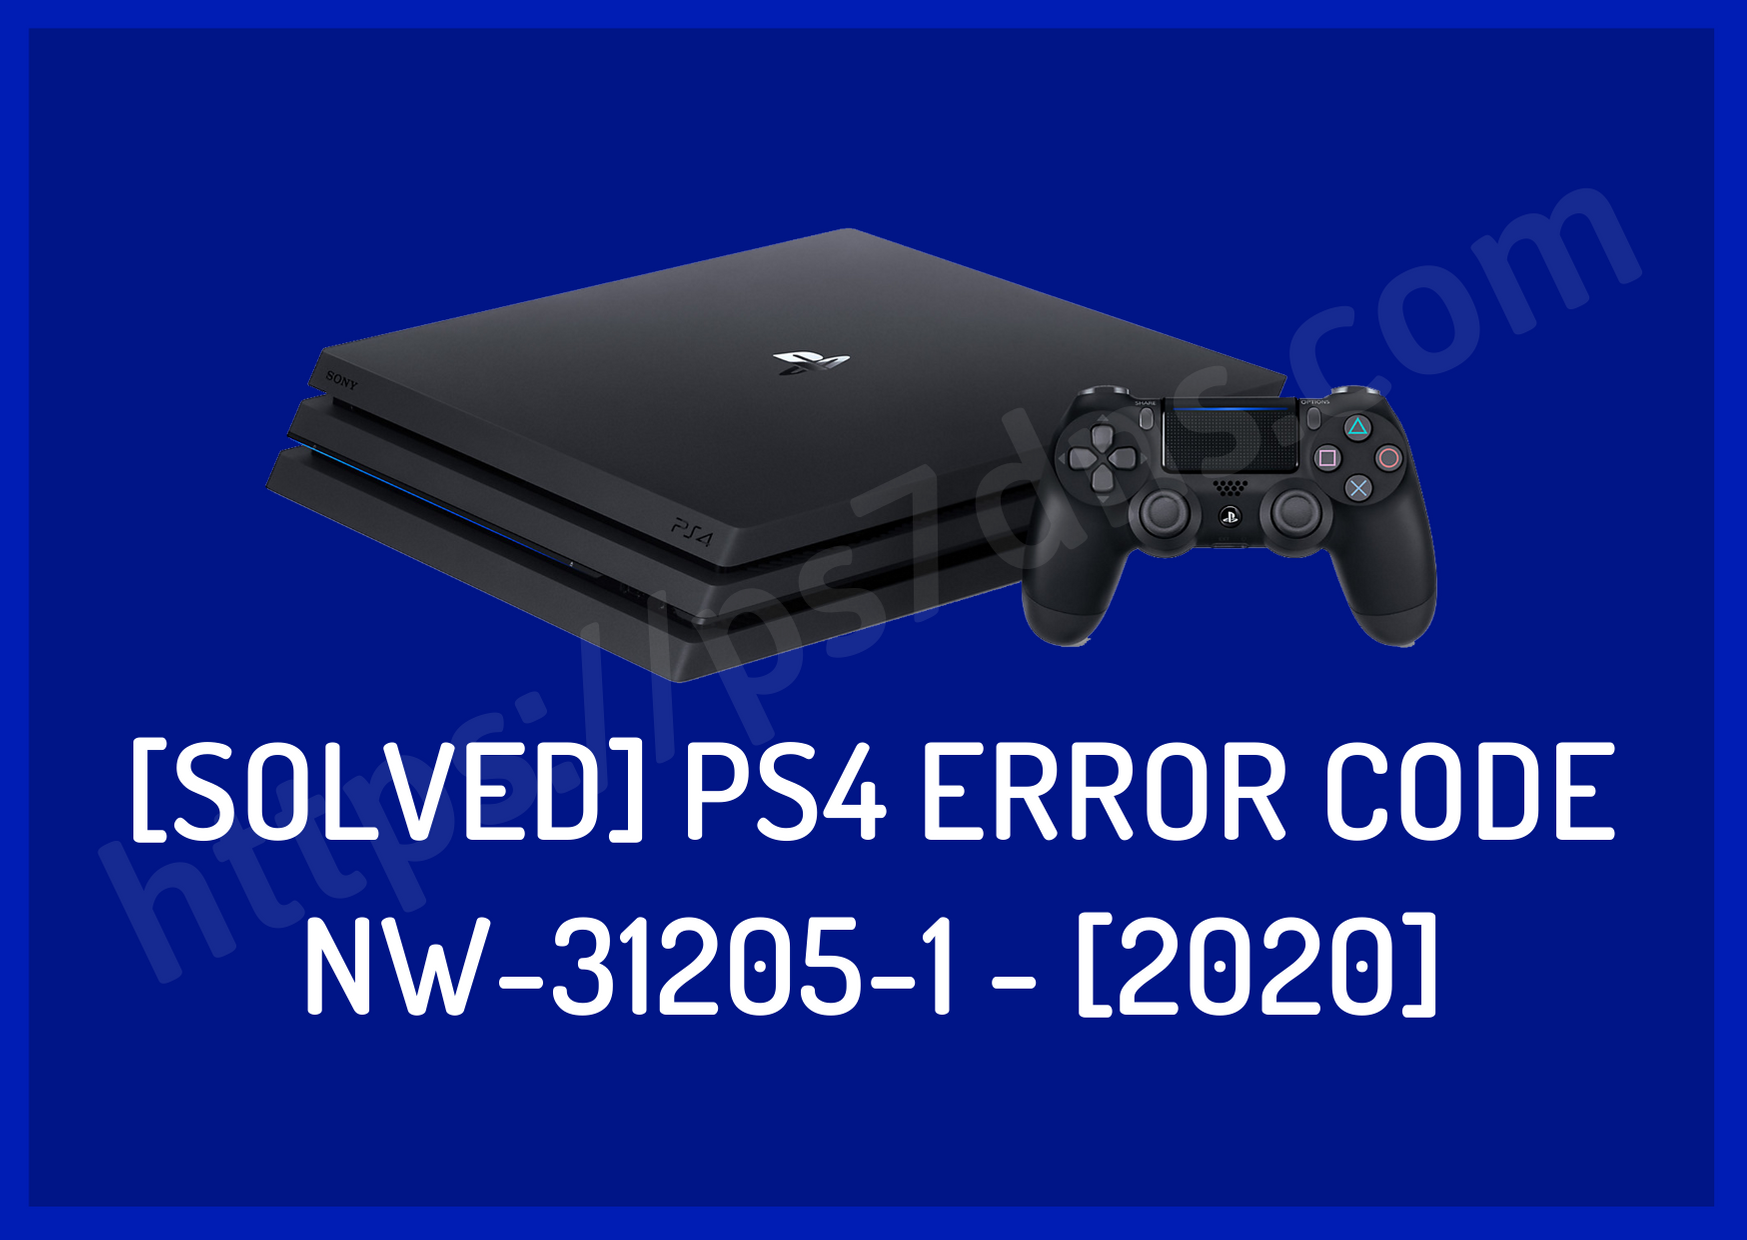 [Solved] PS4 Error Code NW-31205-1 - [2020]